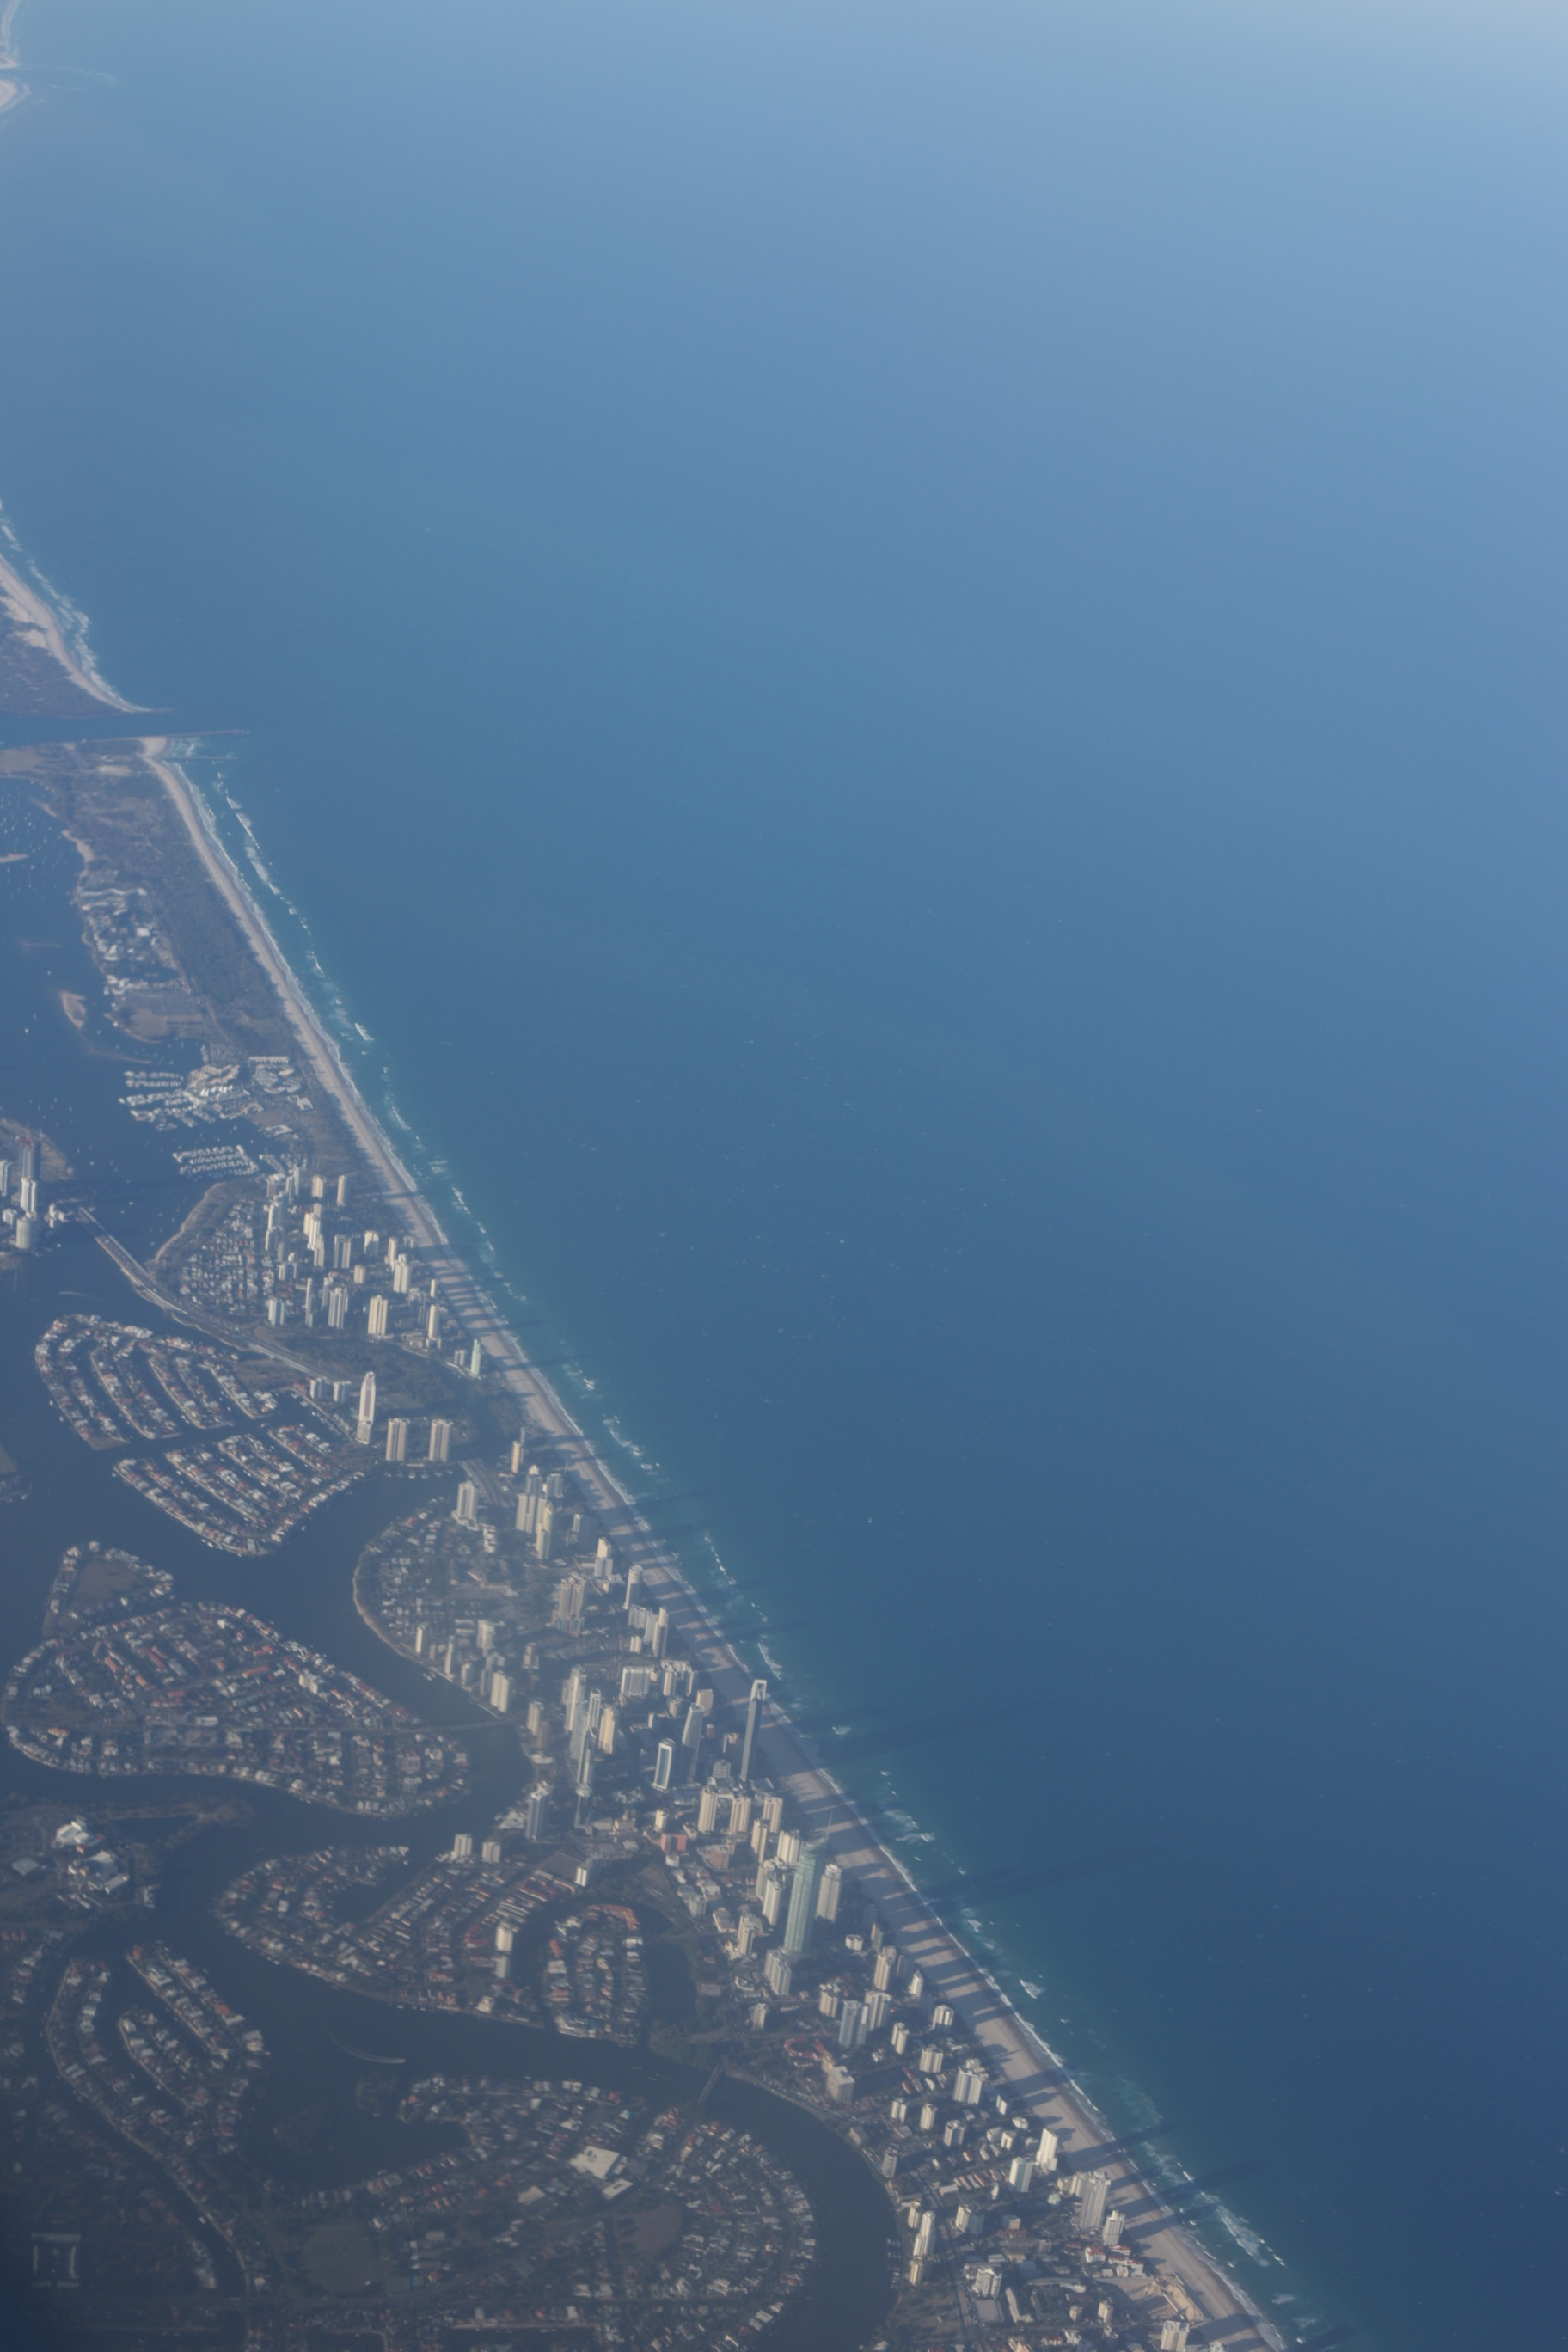 The Gold Coast as seen from a plane.